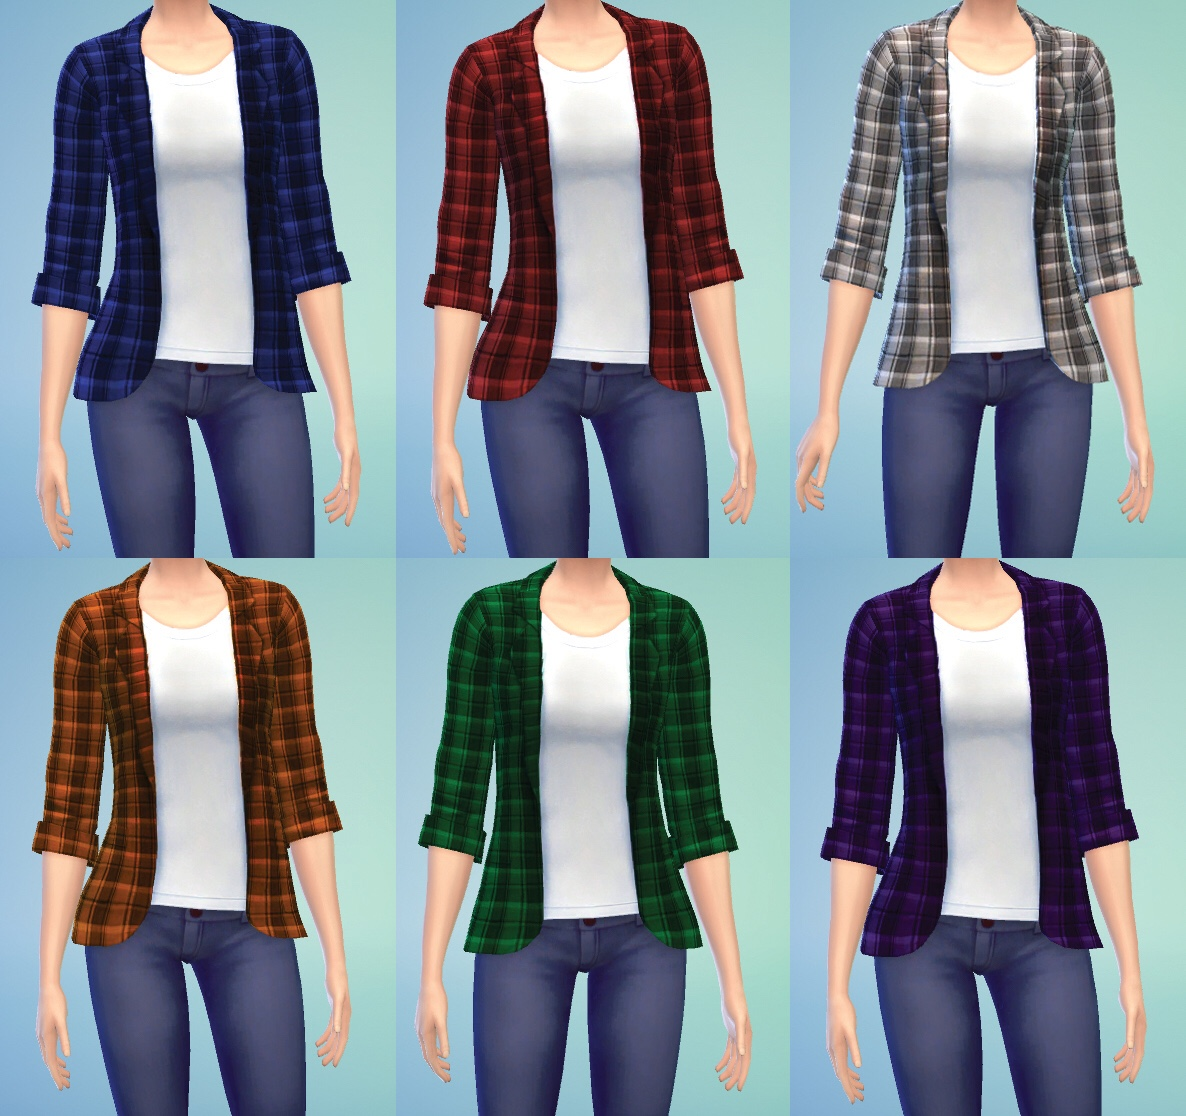 Unbuttoned Plaid Shirts for Teen - Elder Females by Jaylo2112